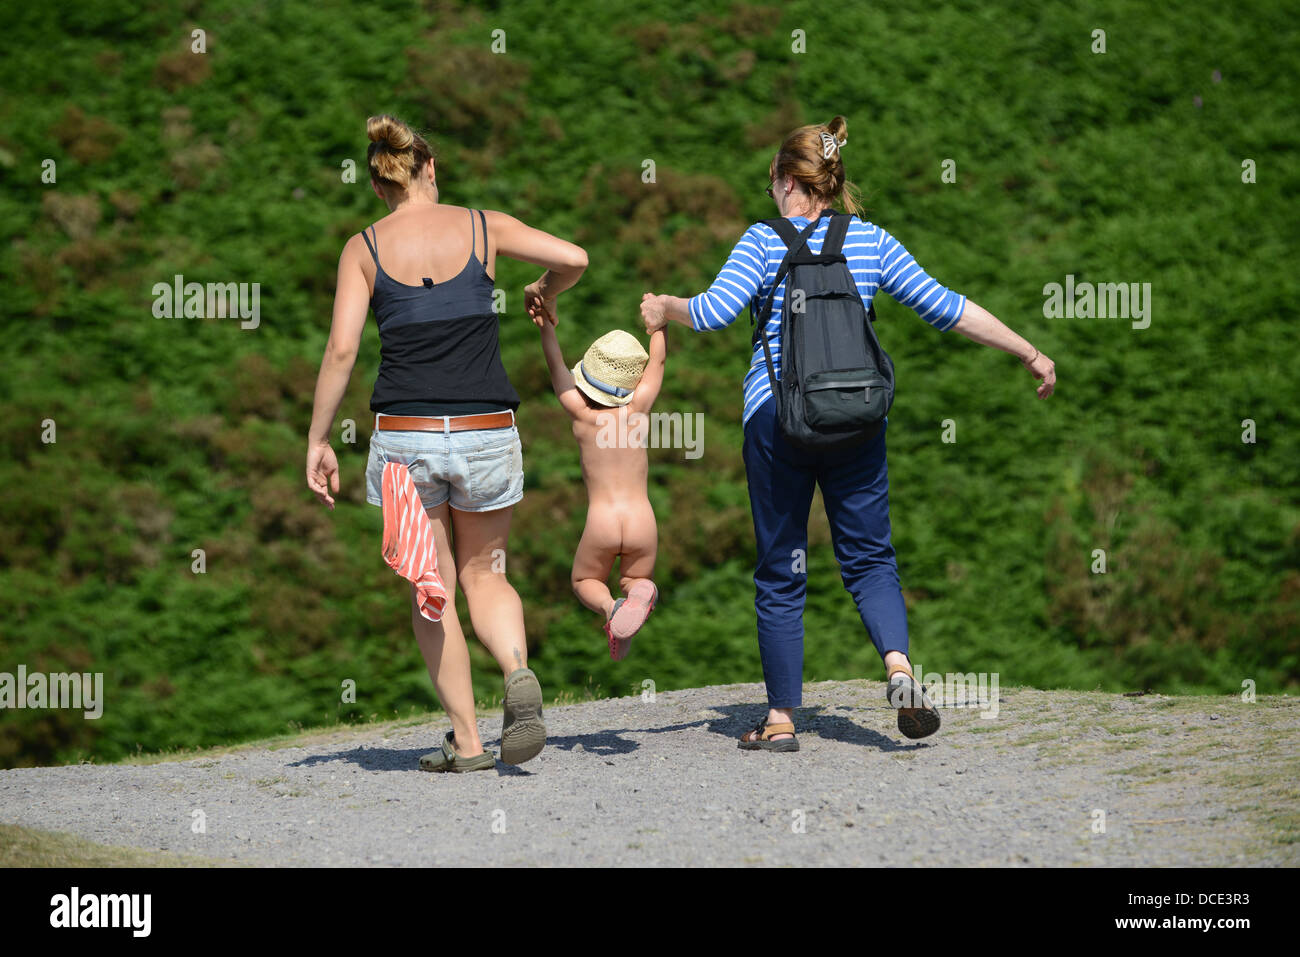 Two women carrying child by swinging the toddler by the arms on family day out. - Stock Image